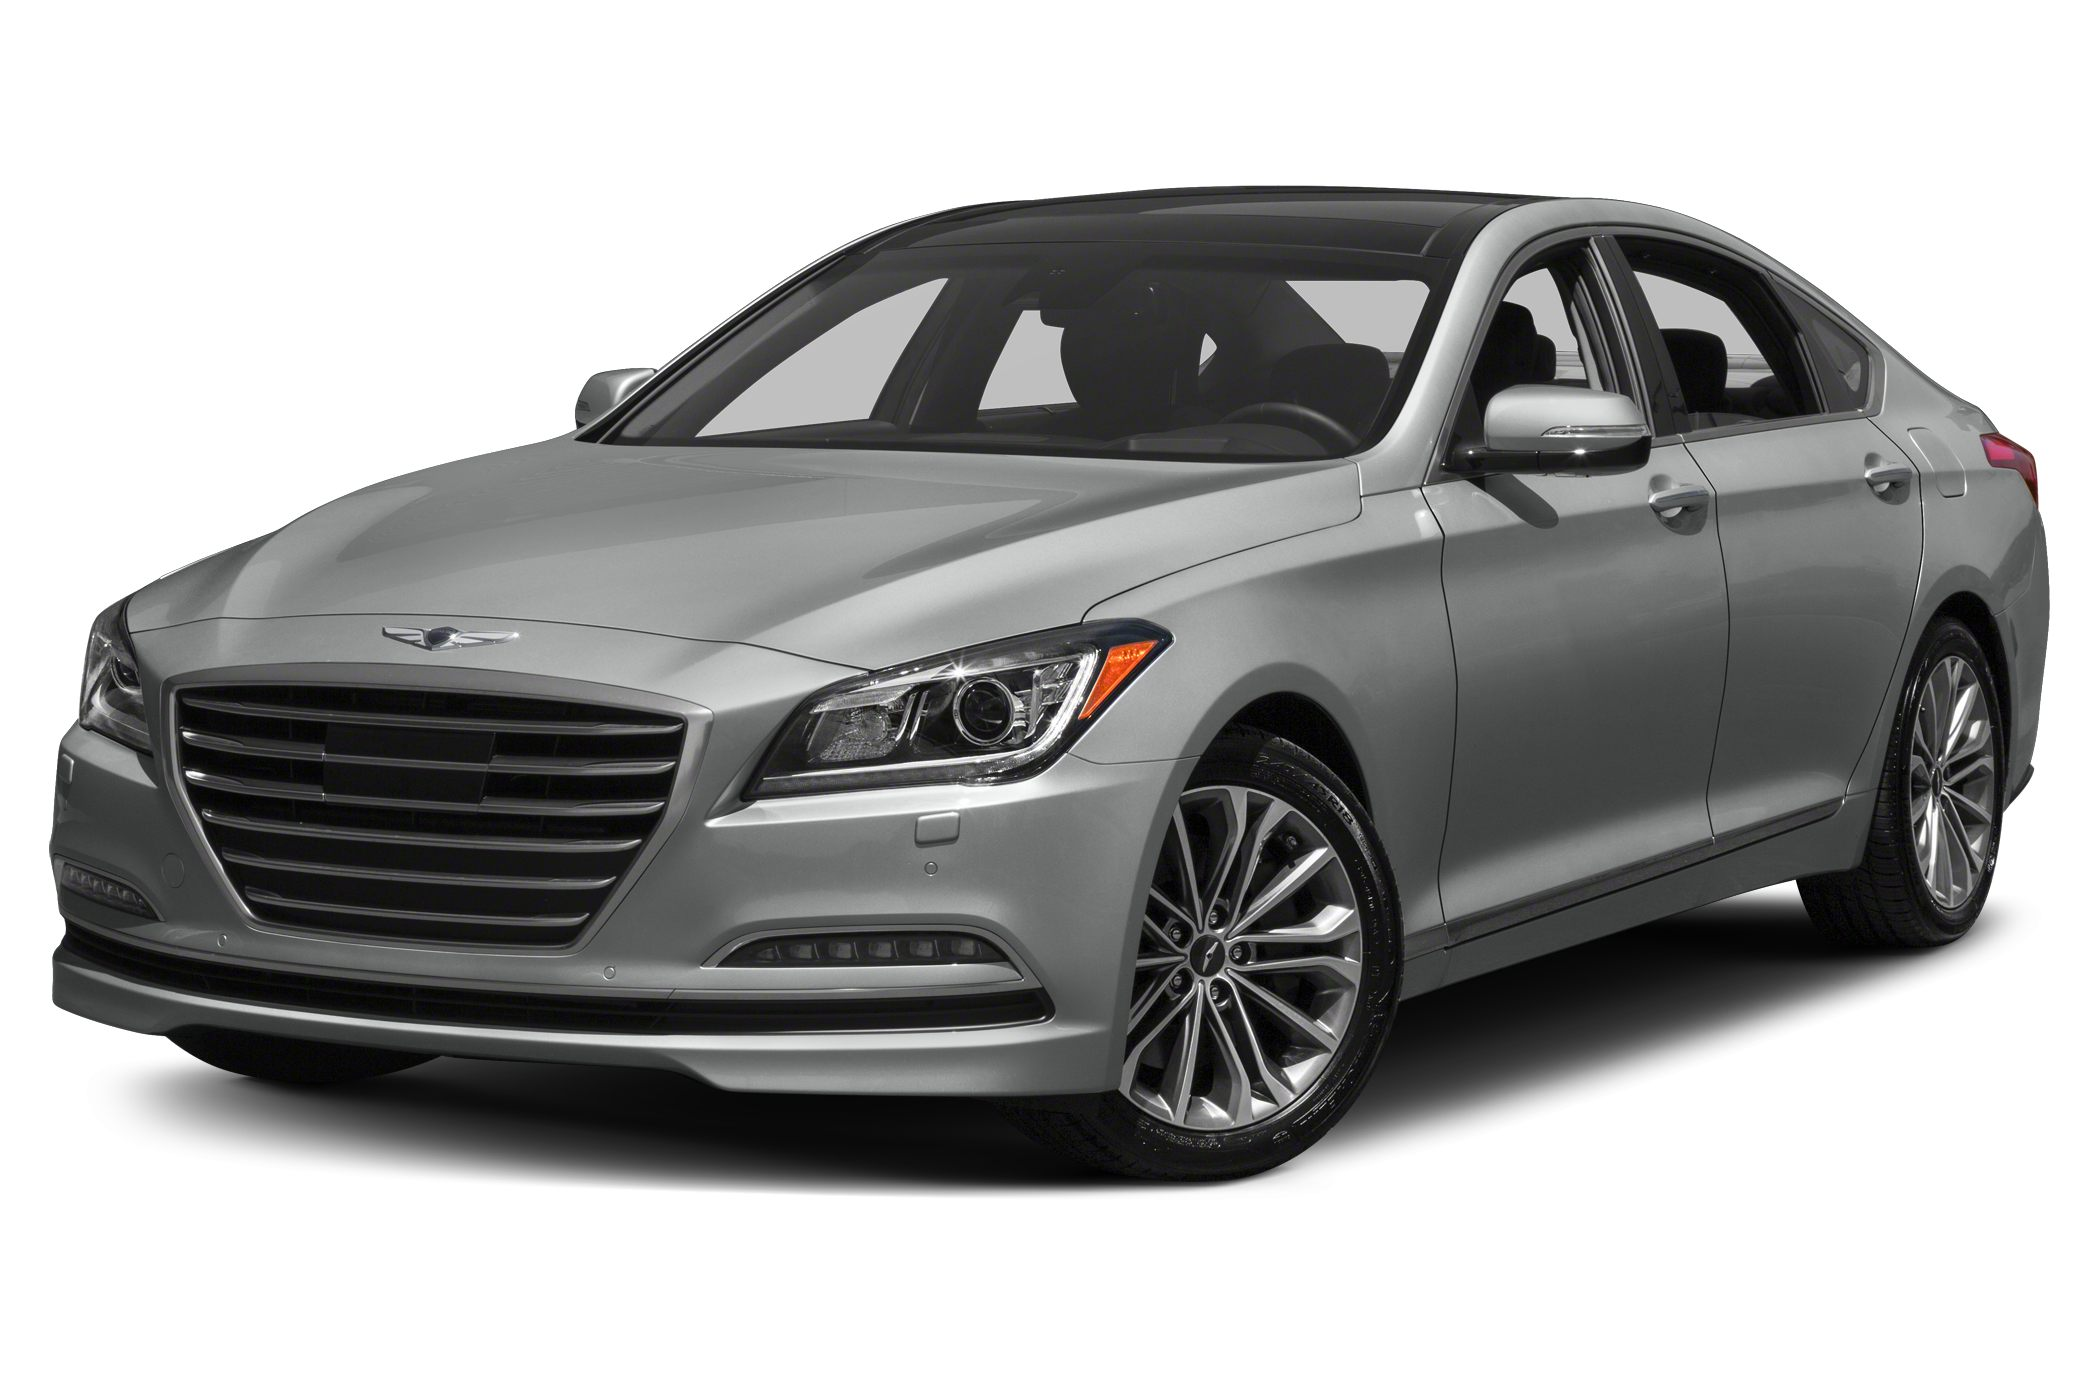 the twin turbo v6 genesis g80 sport costs almost as much as the v8 model autoblog